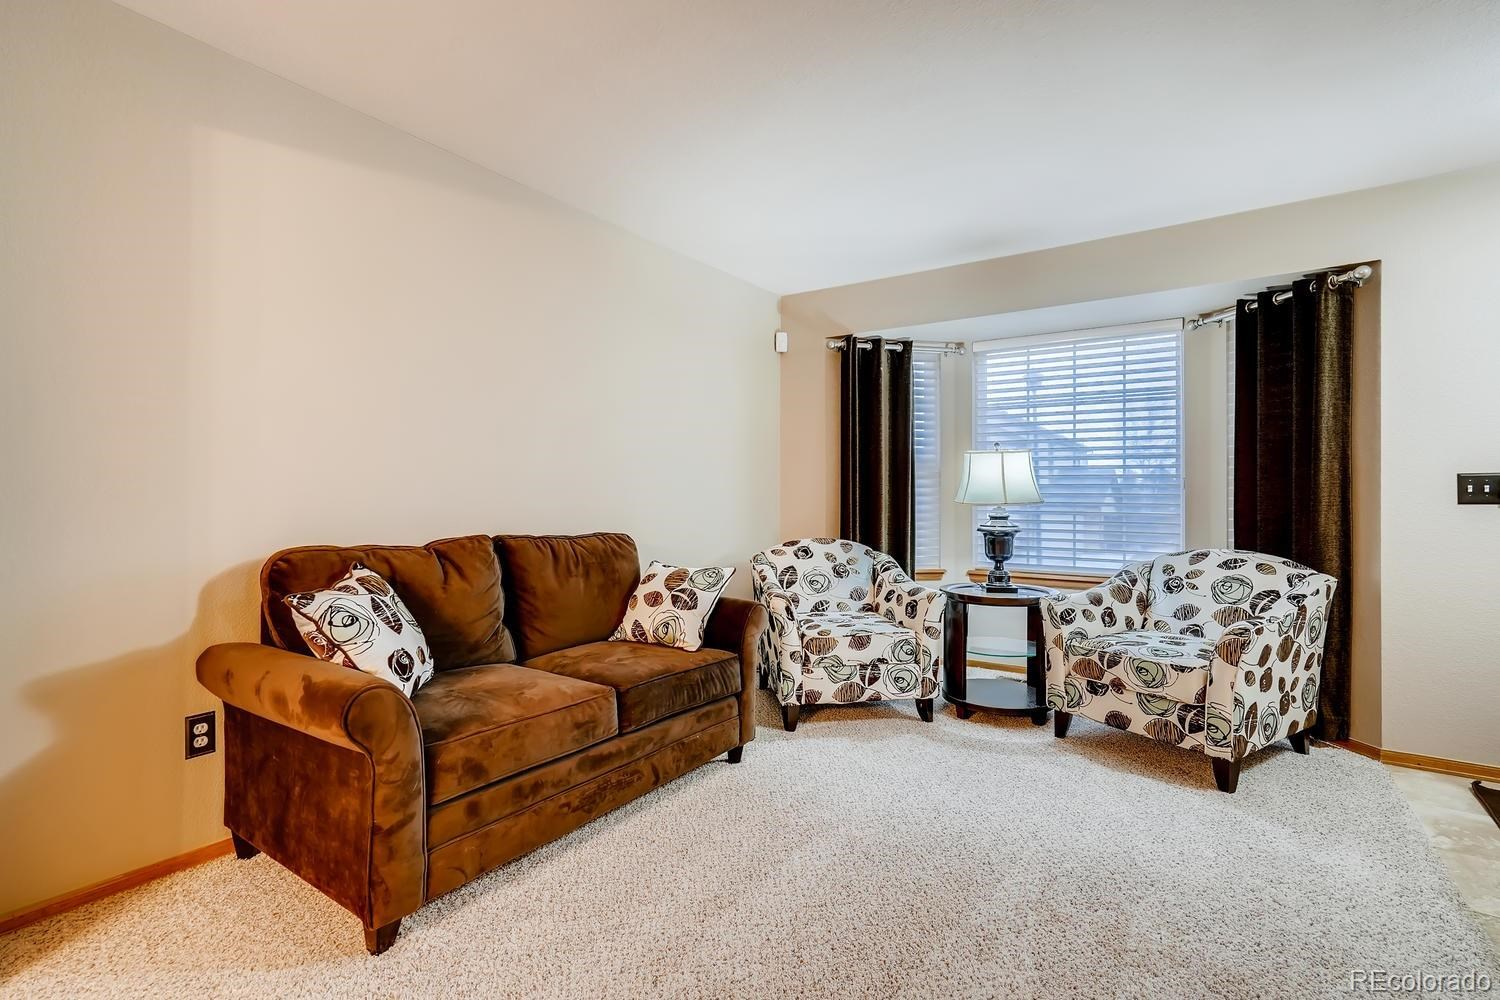 MLS# 6431155 - 3 - 6773 W 98th Circle, Westminster, CO 80021